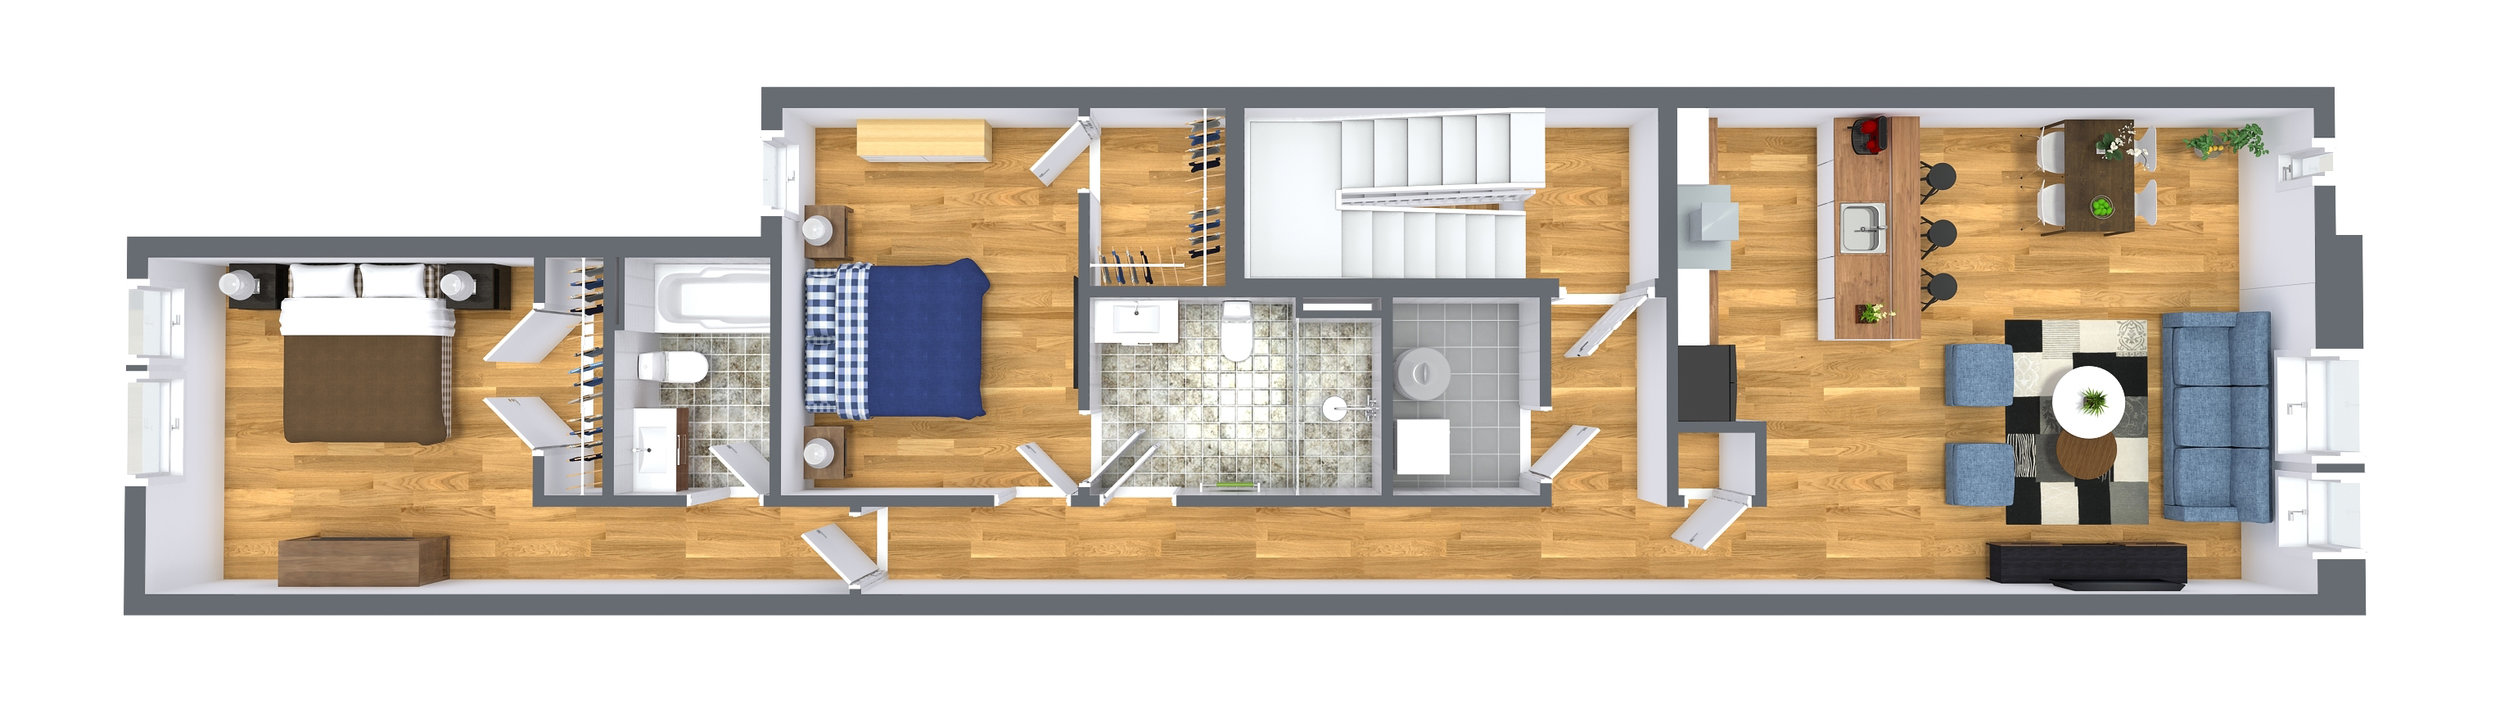 Level Two - Unit Flat Two Bedroom, Two Full Bathroom,1,150 SqrFt.